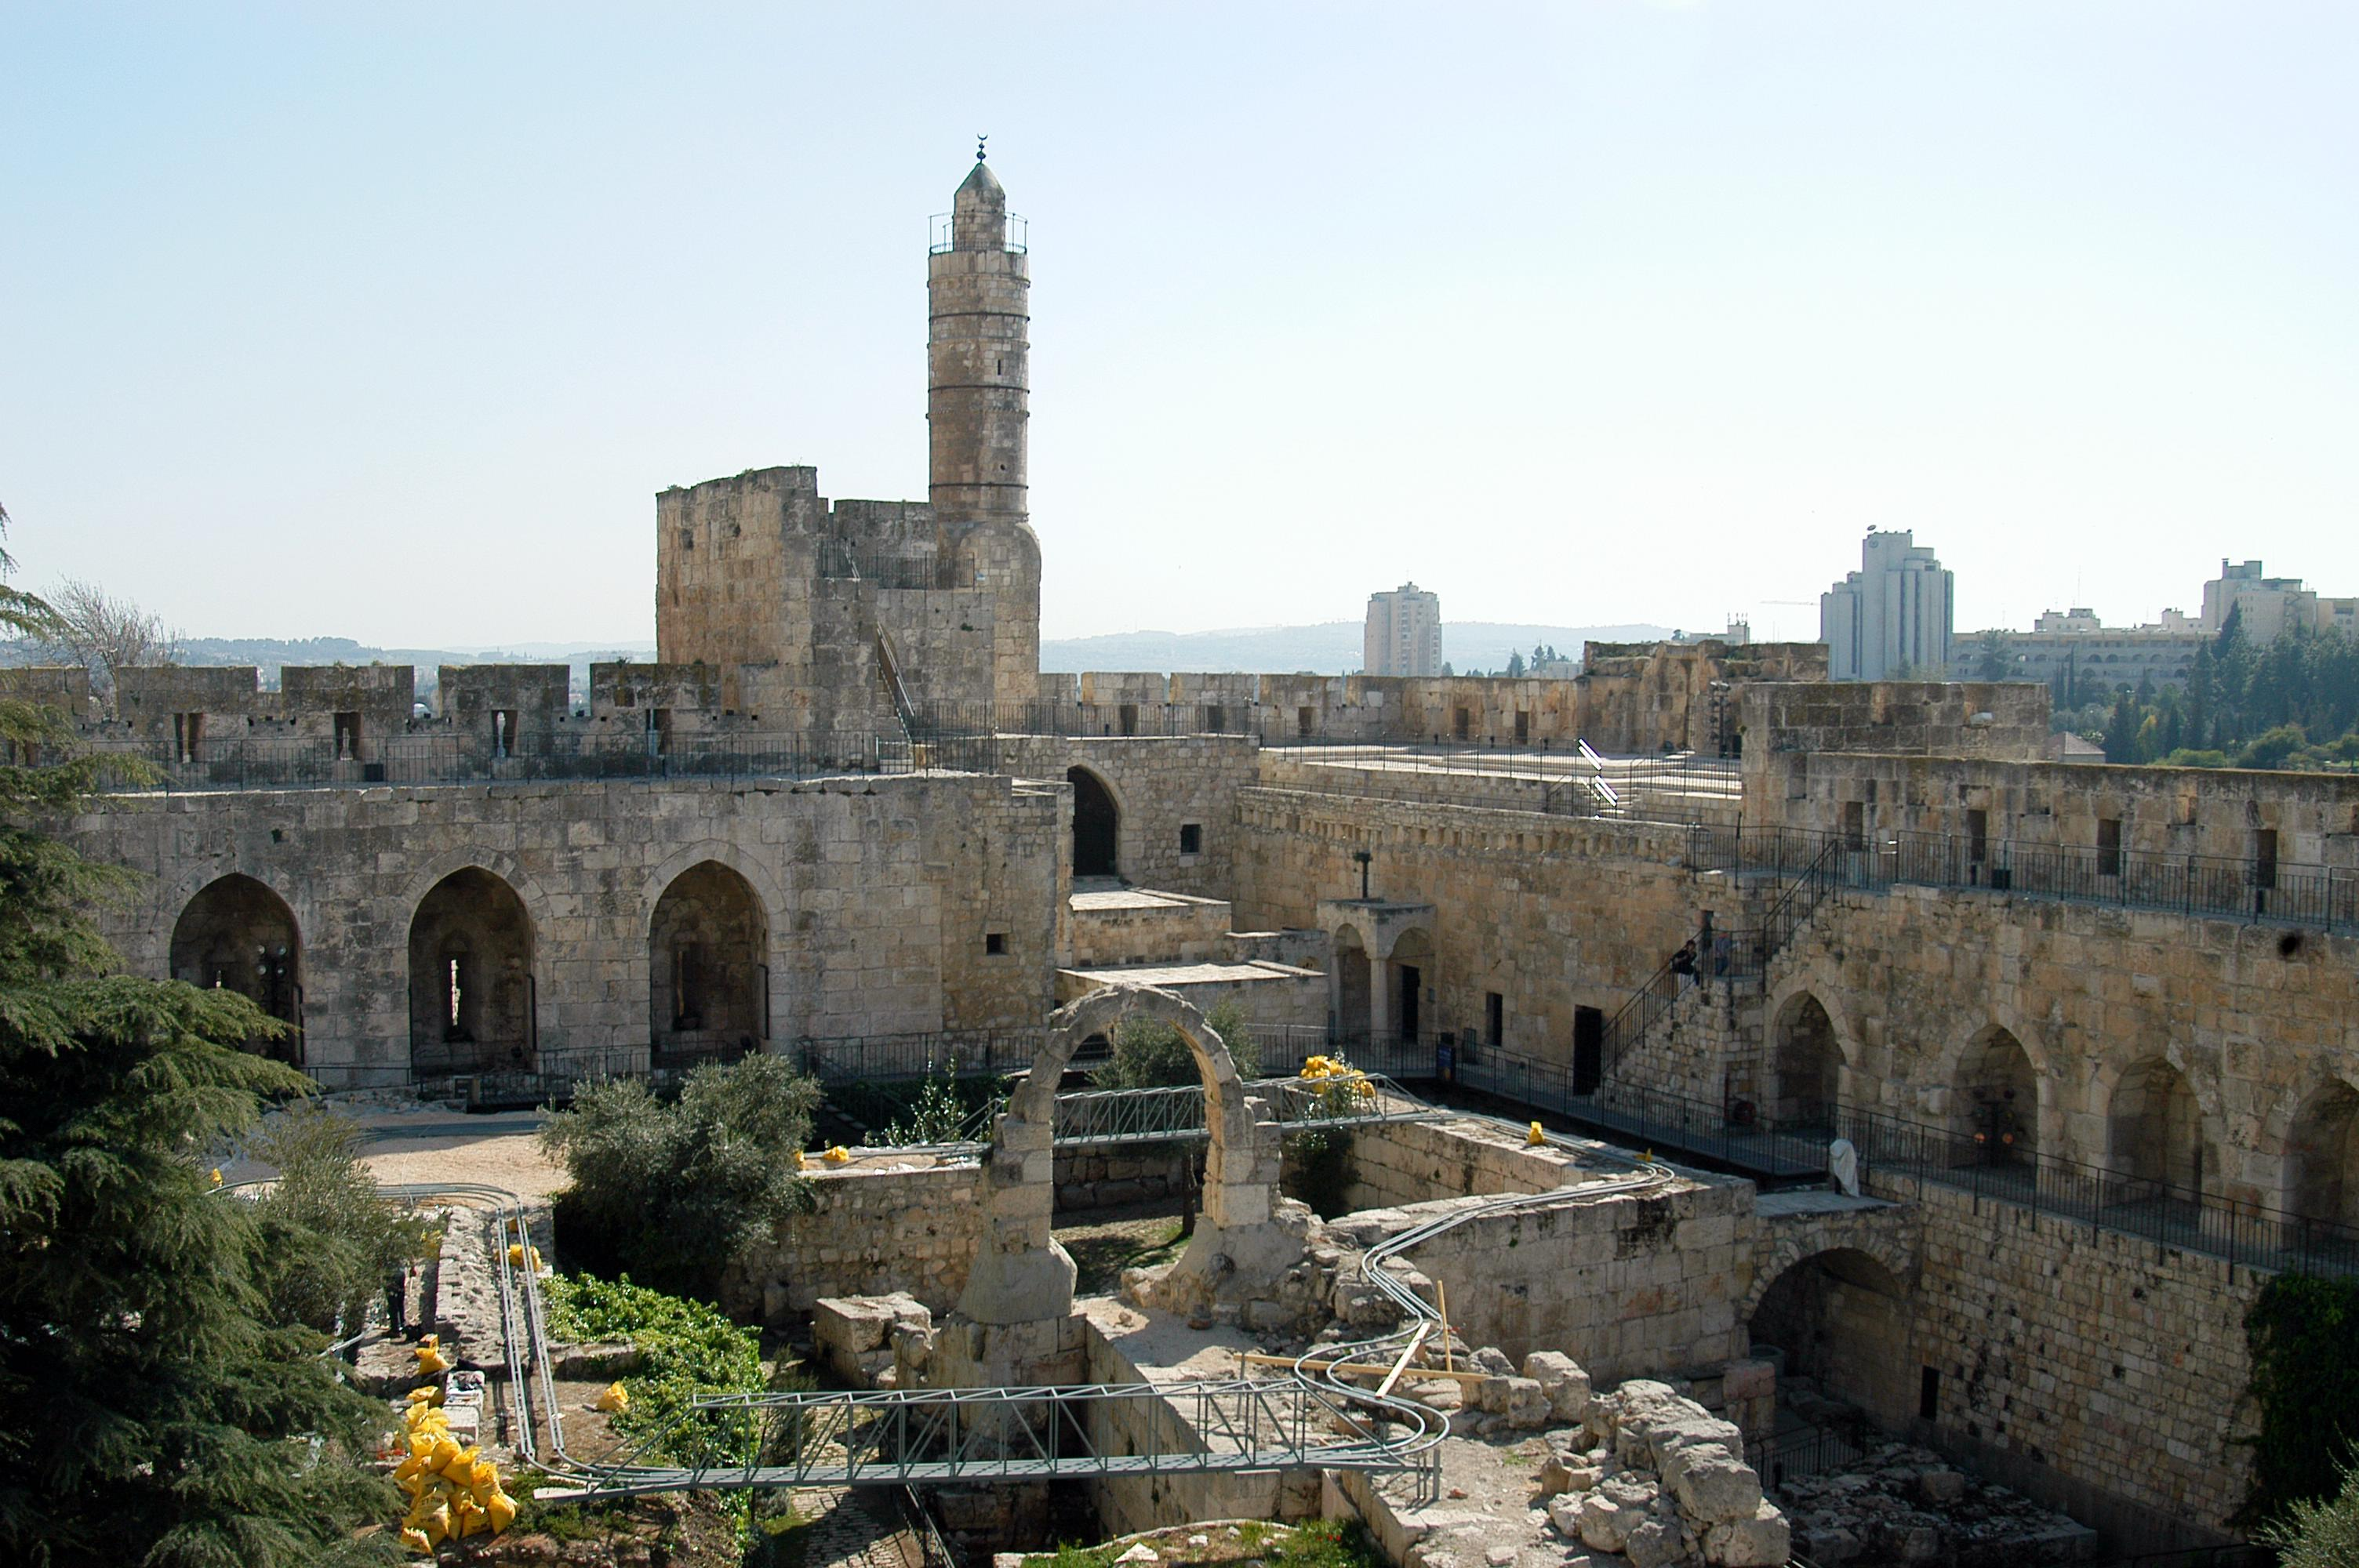 The Citadel (Tower of David) with the archaeological finds in its courtyard and the Ottoman minaret, as it appears today. Photo taken on March 28, 2005.